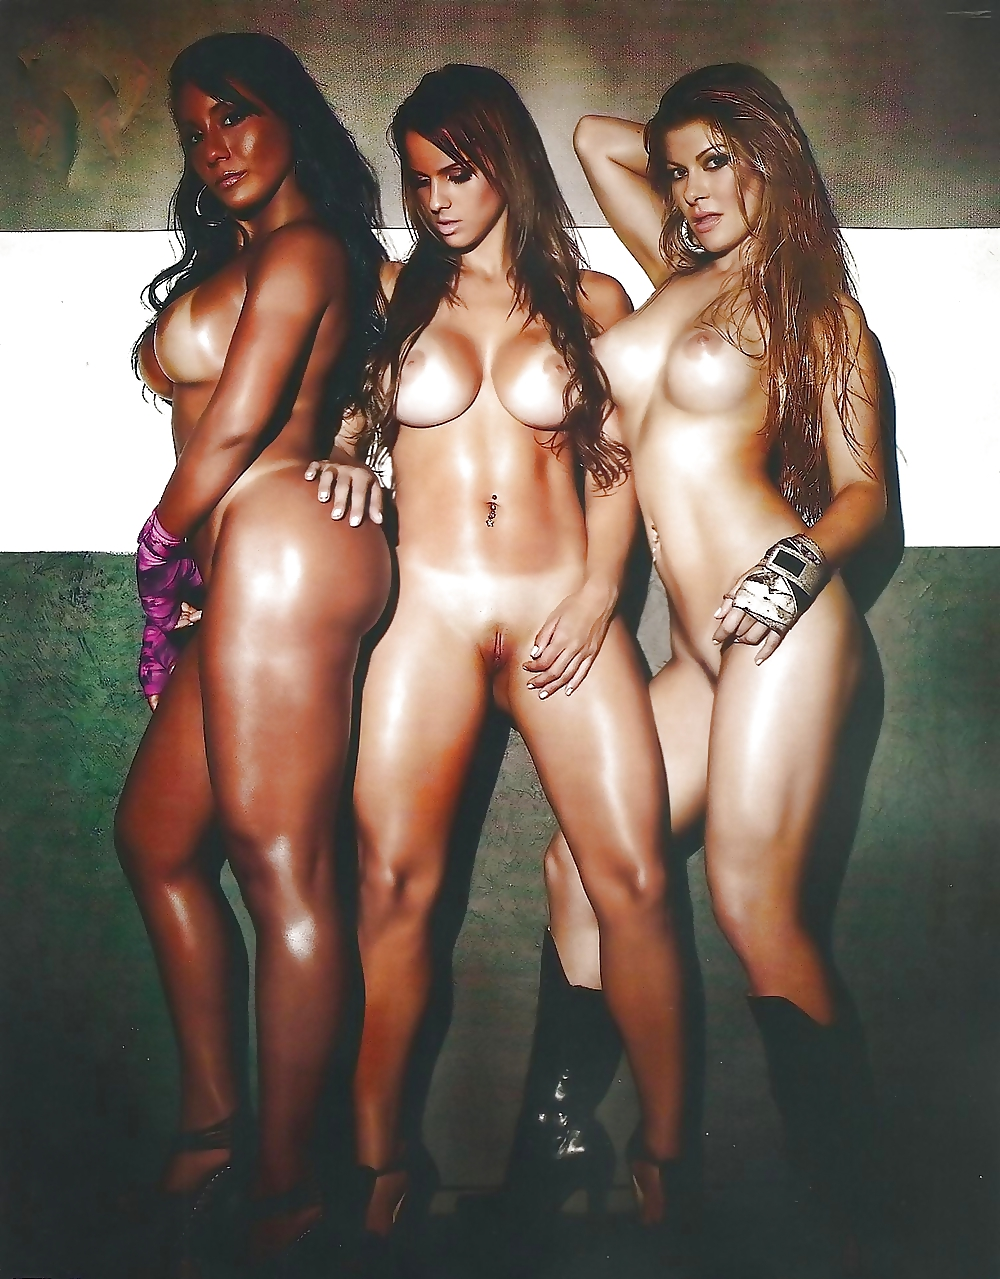 bat-her-msn-addyz-sexy-girls-naked